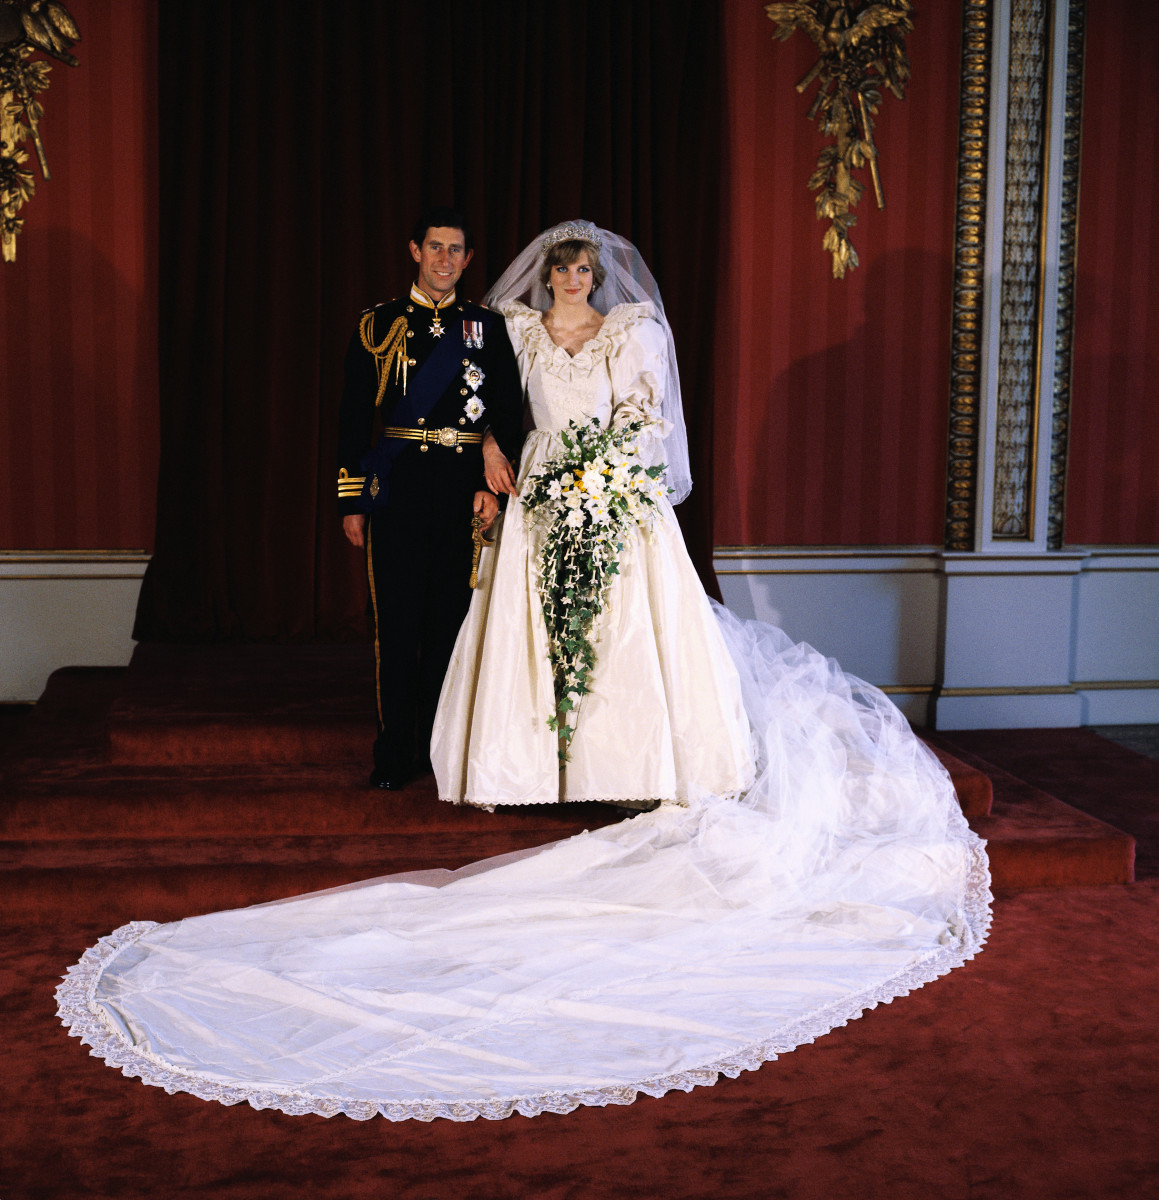 Princess Diana and Prince Charles pose in Buckingham Palace for their official wedding photograph on July 29, 1981